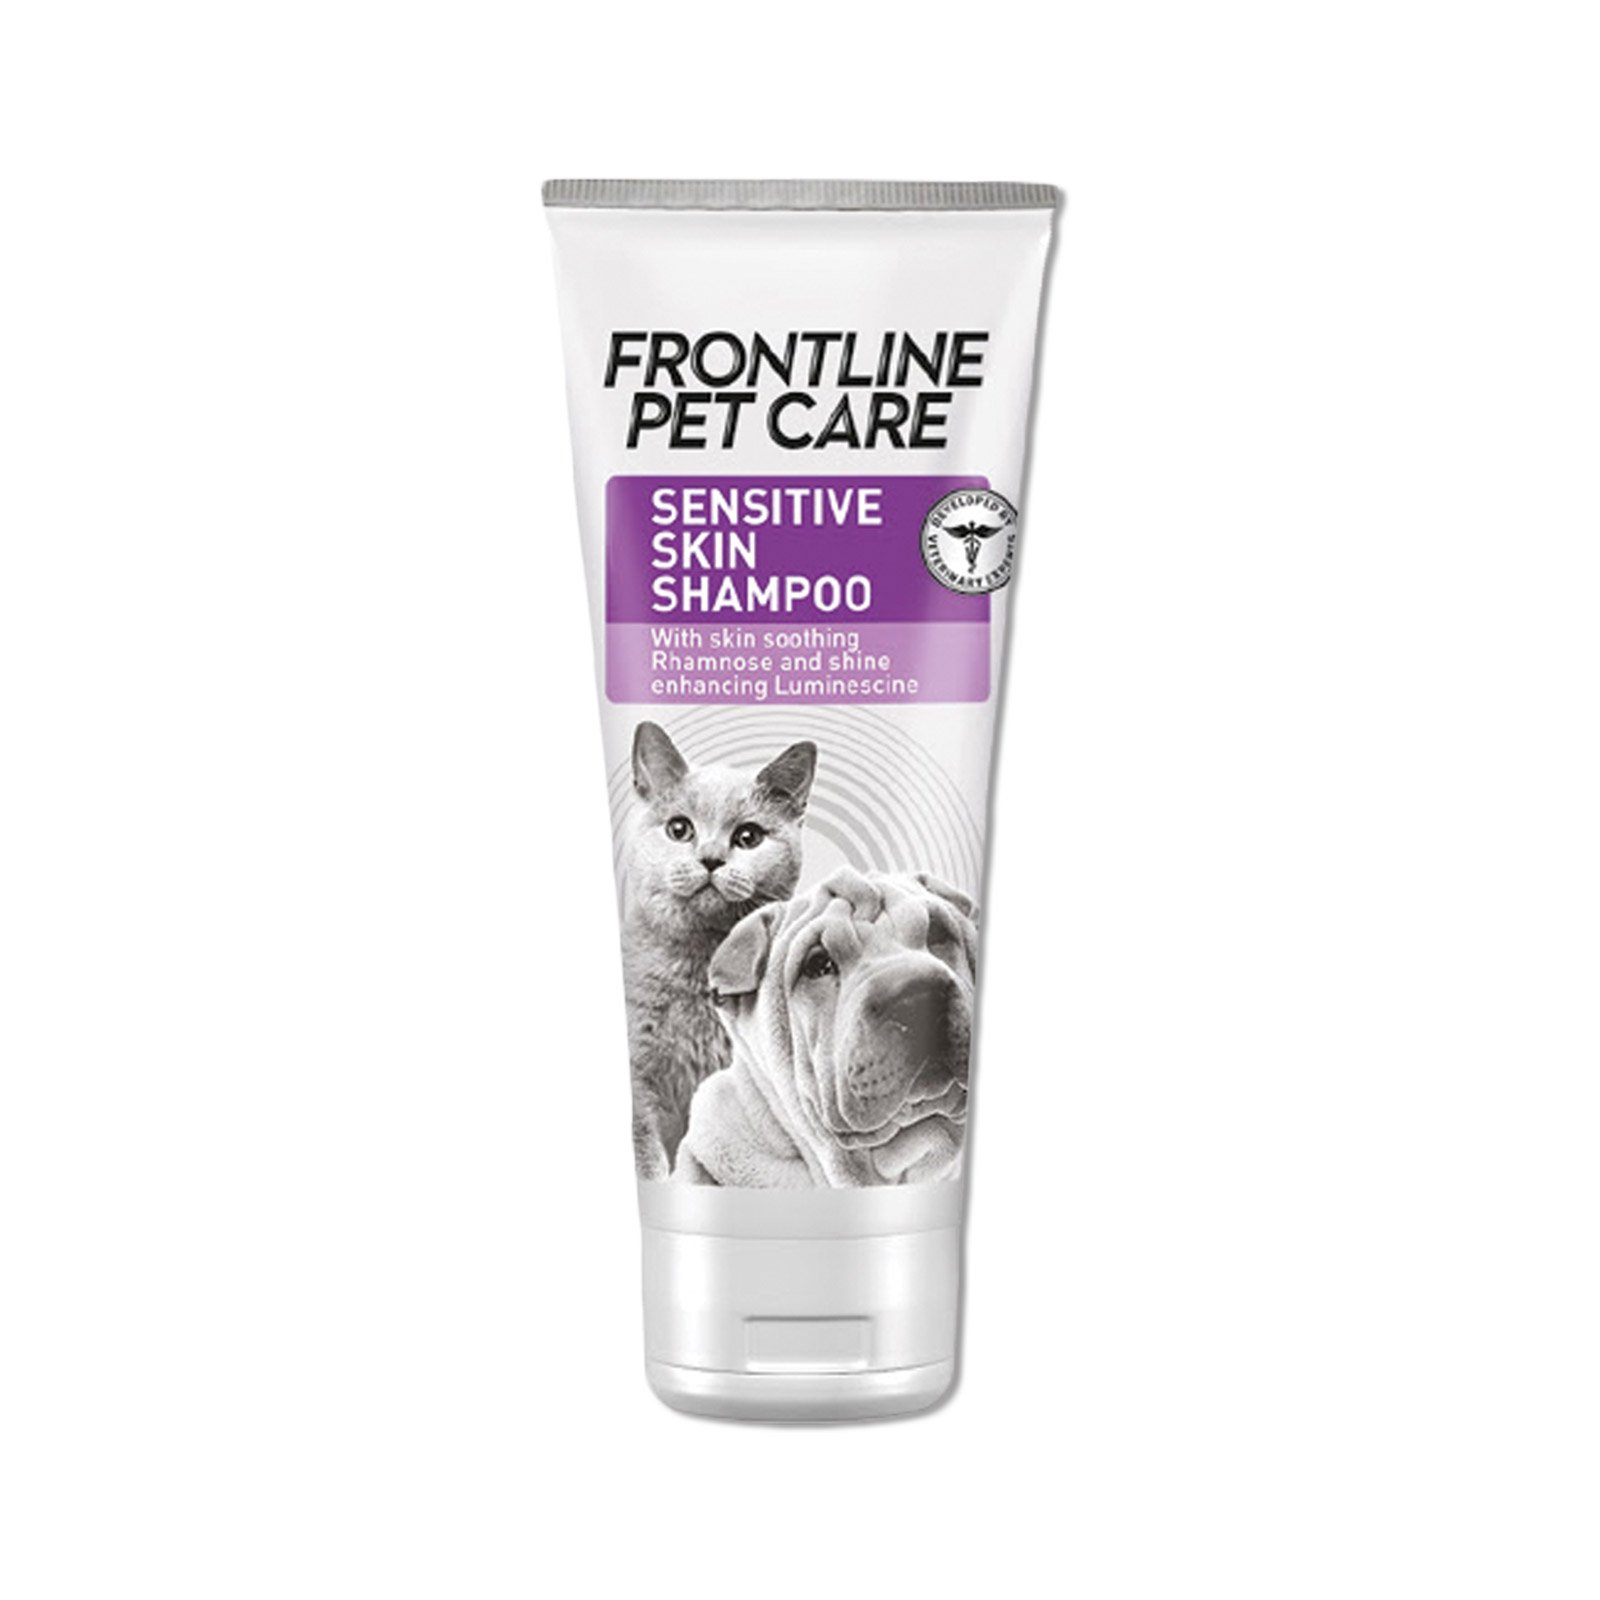 Frontline Pet Care Sensitive Skin Shampoo for Dogs & Cats